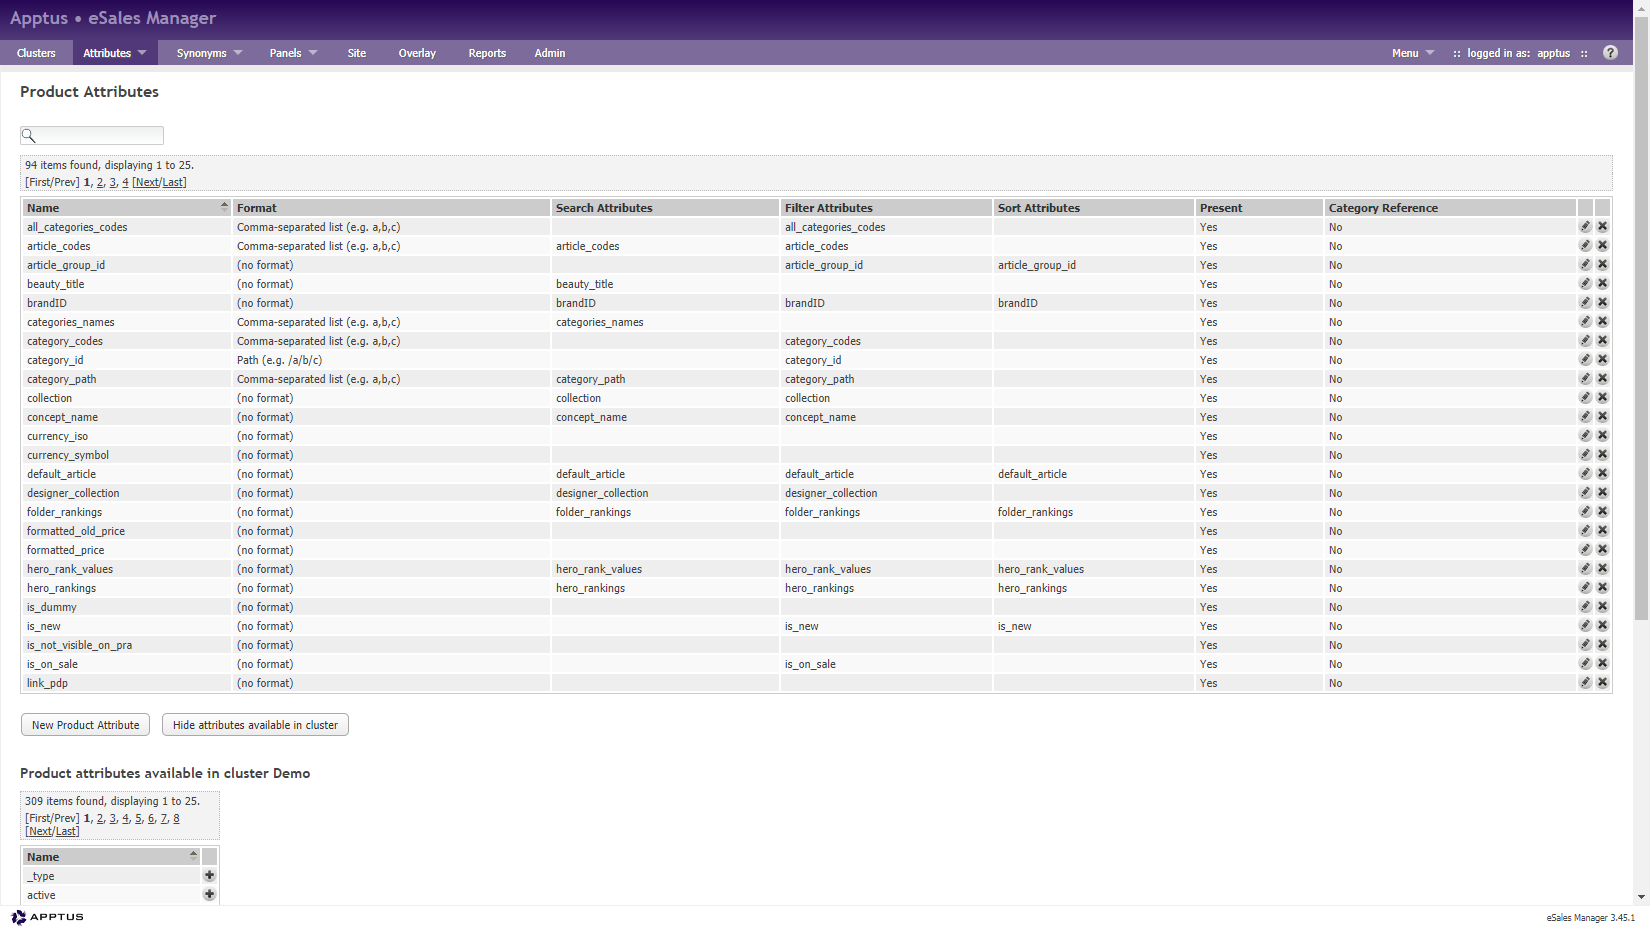 Graphic showing product attributes in Apptus eSales Manager